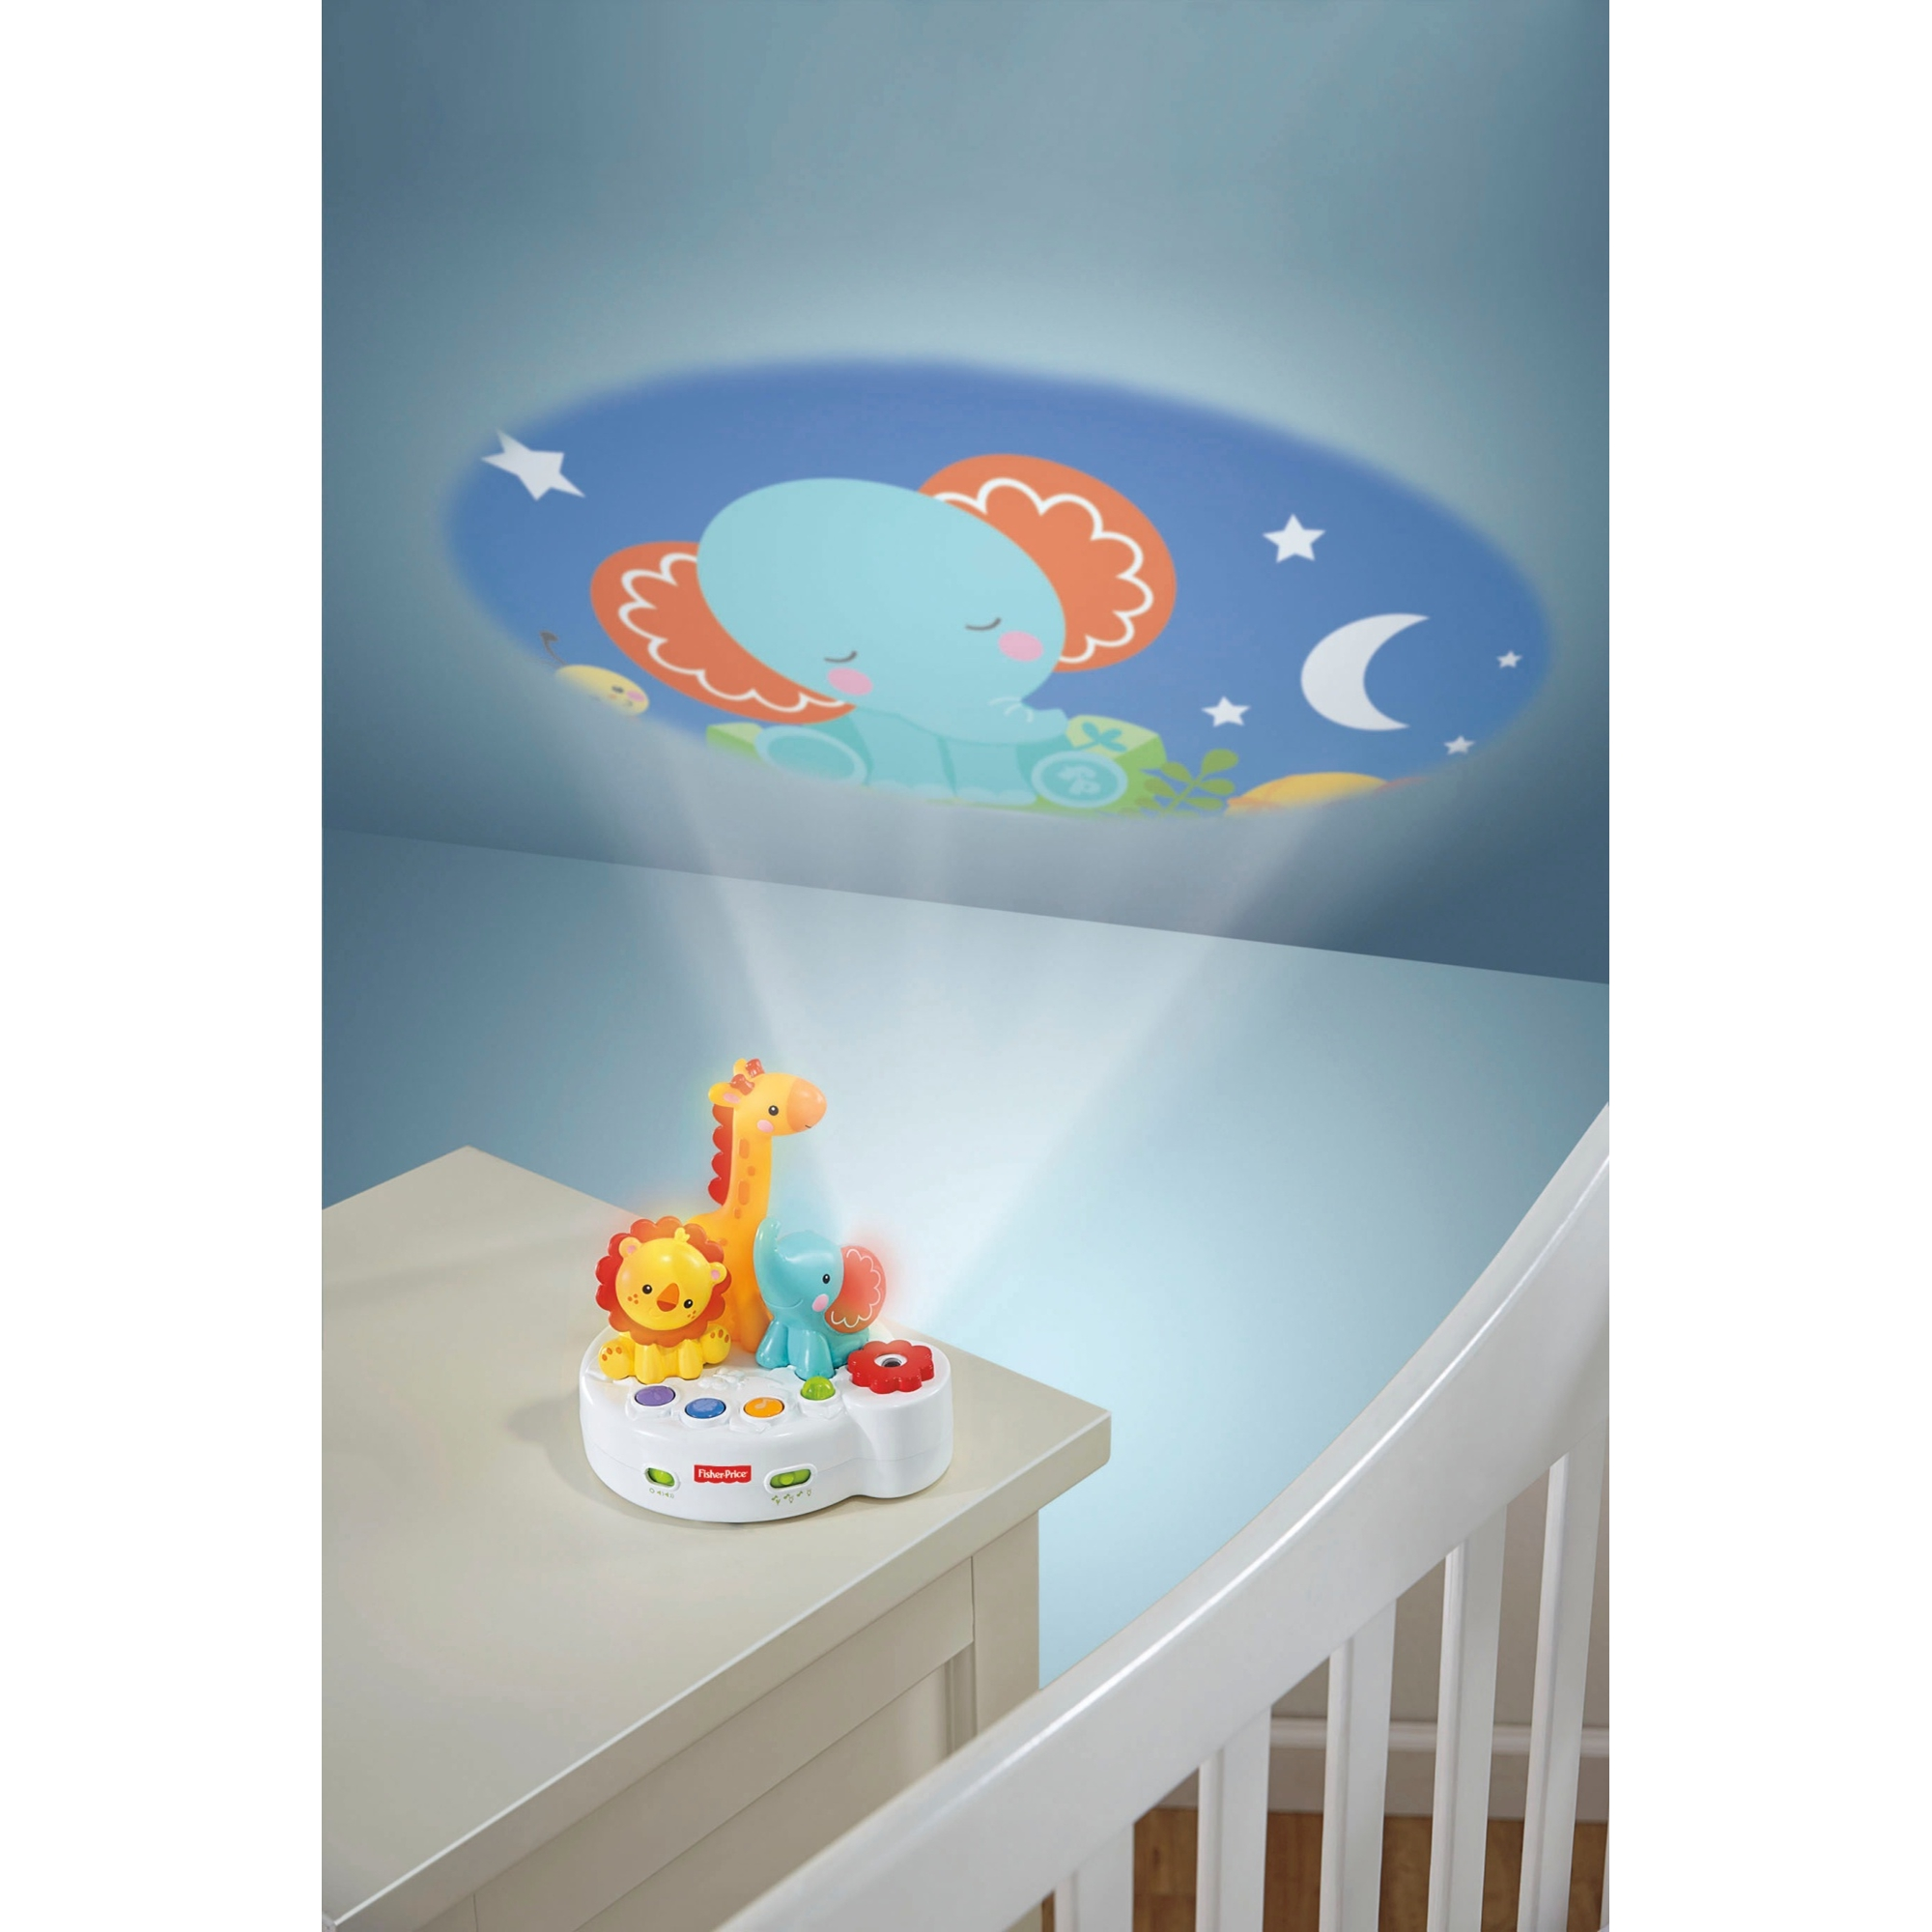 FisherPrice Rainforest 4n1 Projector Soother